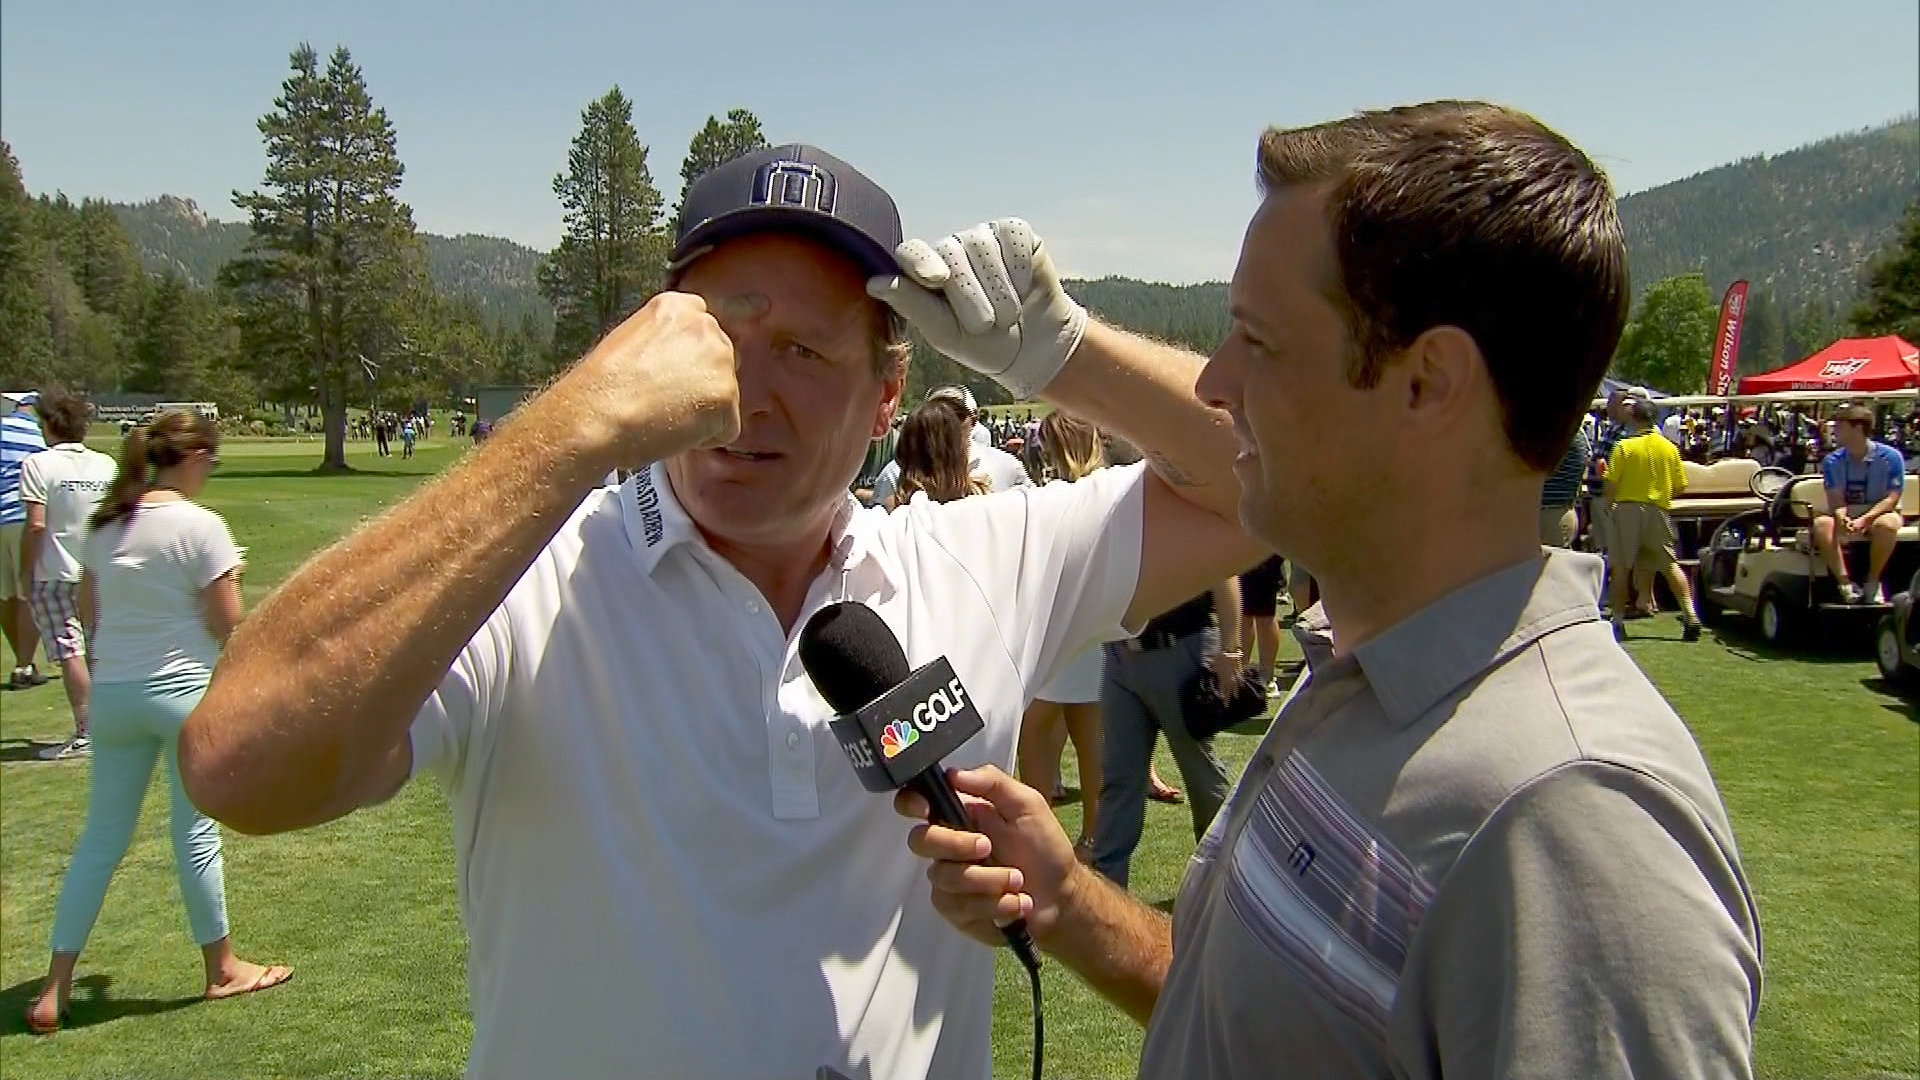 http://golfchannel.akamaized.net/ramp/769/530/RAPID_FIRE_JEREMY_ROENICK.jpg